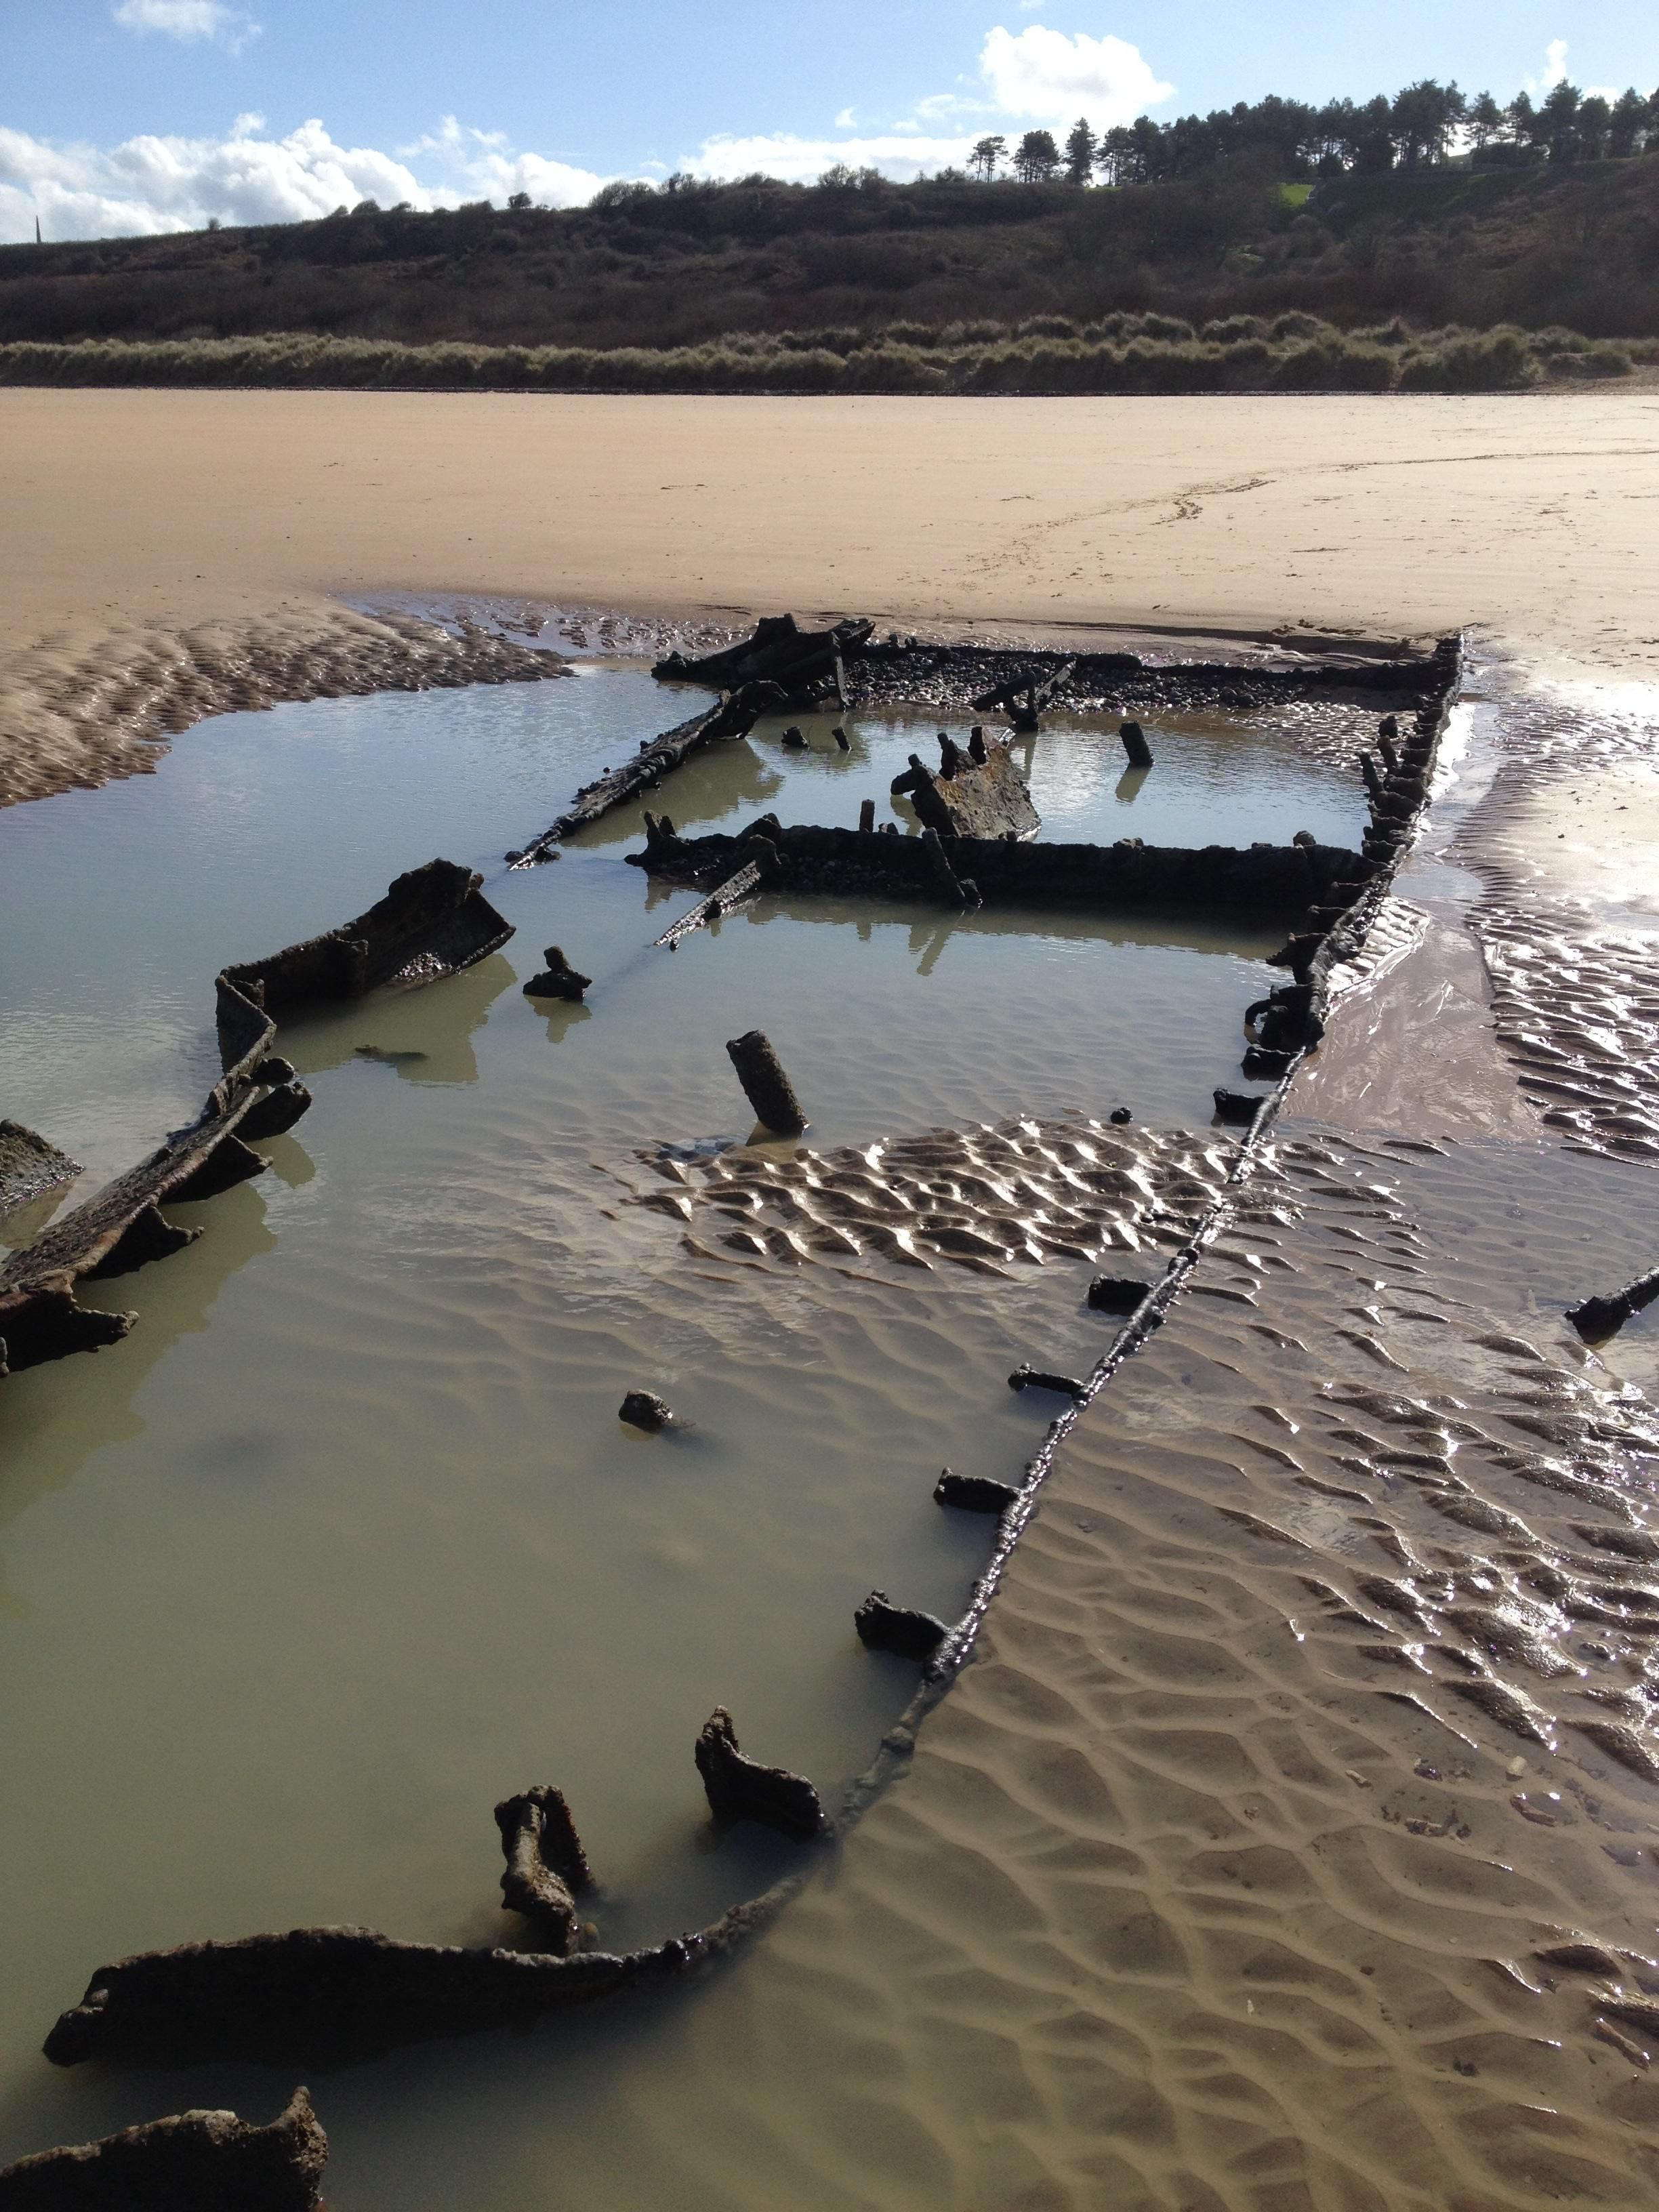 Omaha Beach Normandy France Remains Of A Higgins Boat On These Were Made Wood From Factory In New Orleans